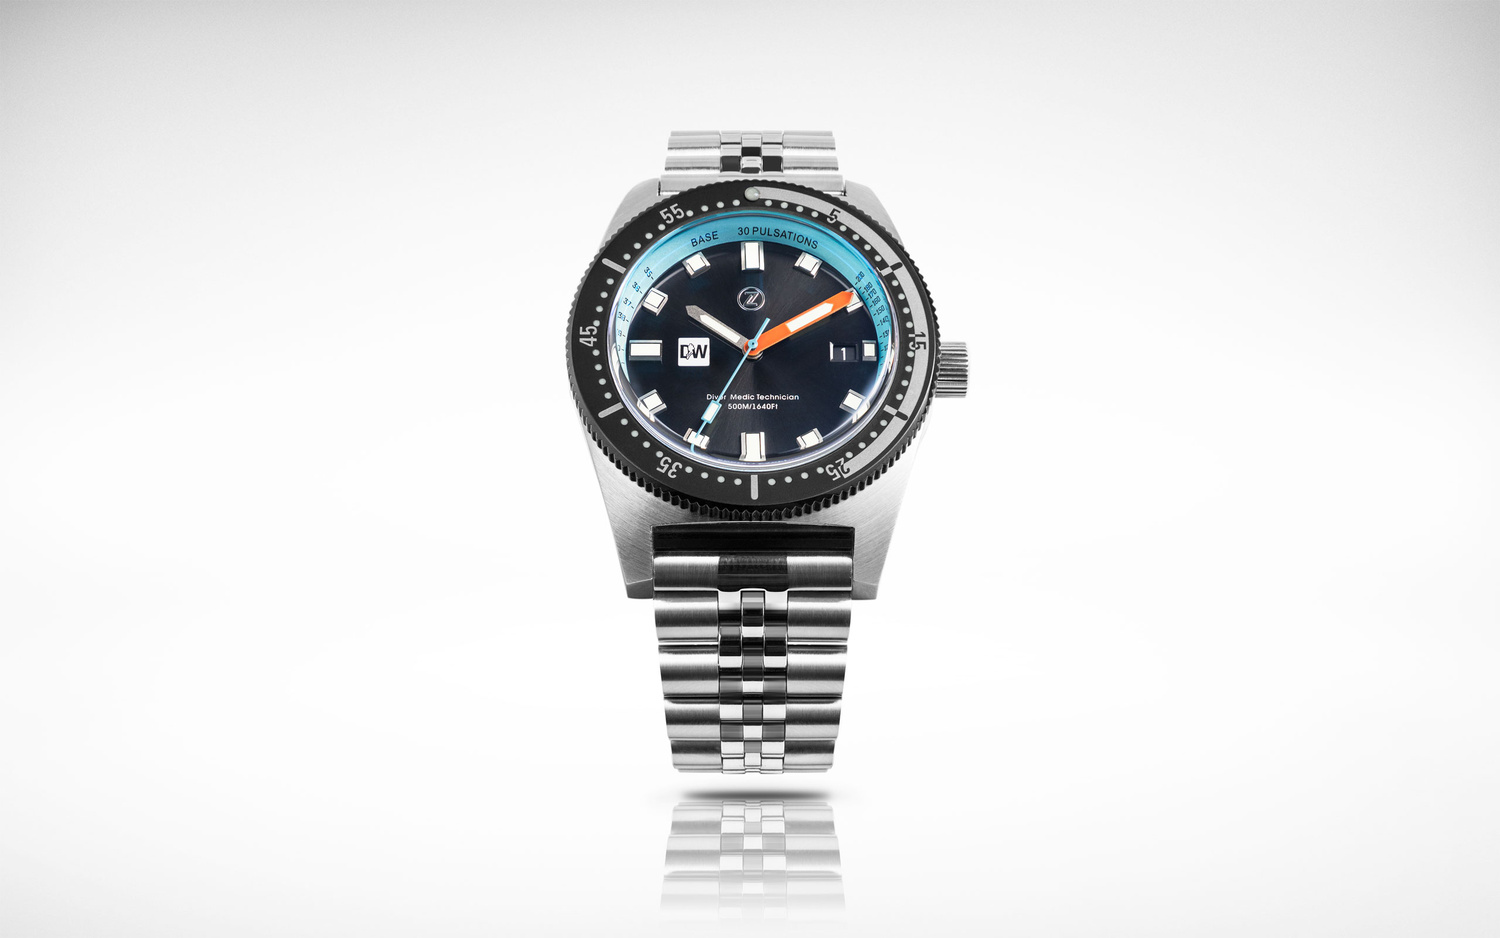 Zelos Diver Watch commercial shot by Luca Russo